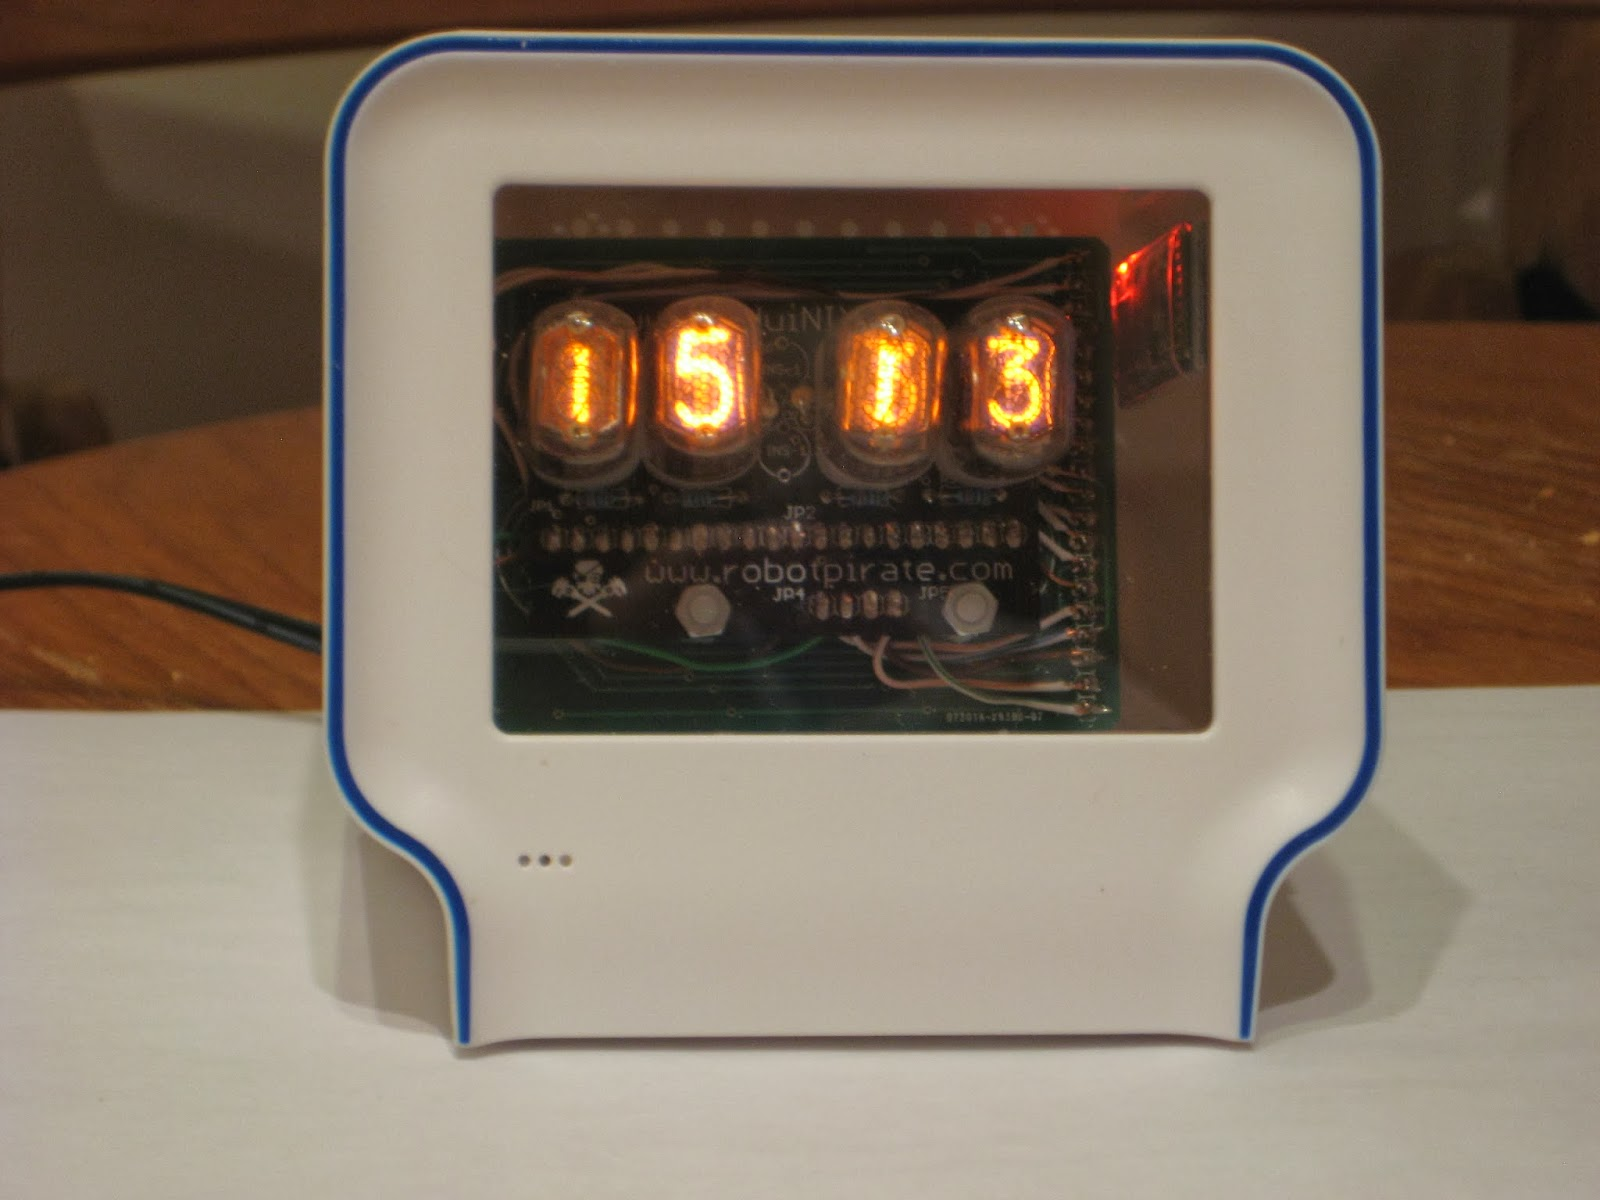 Wise time with arduino chumby nixie clock